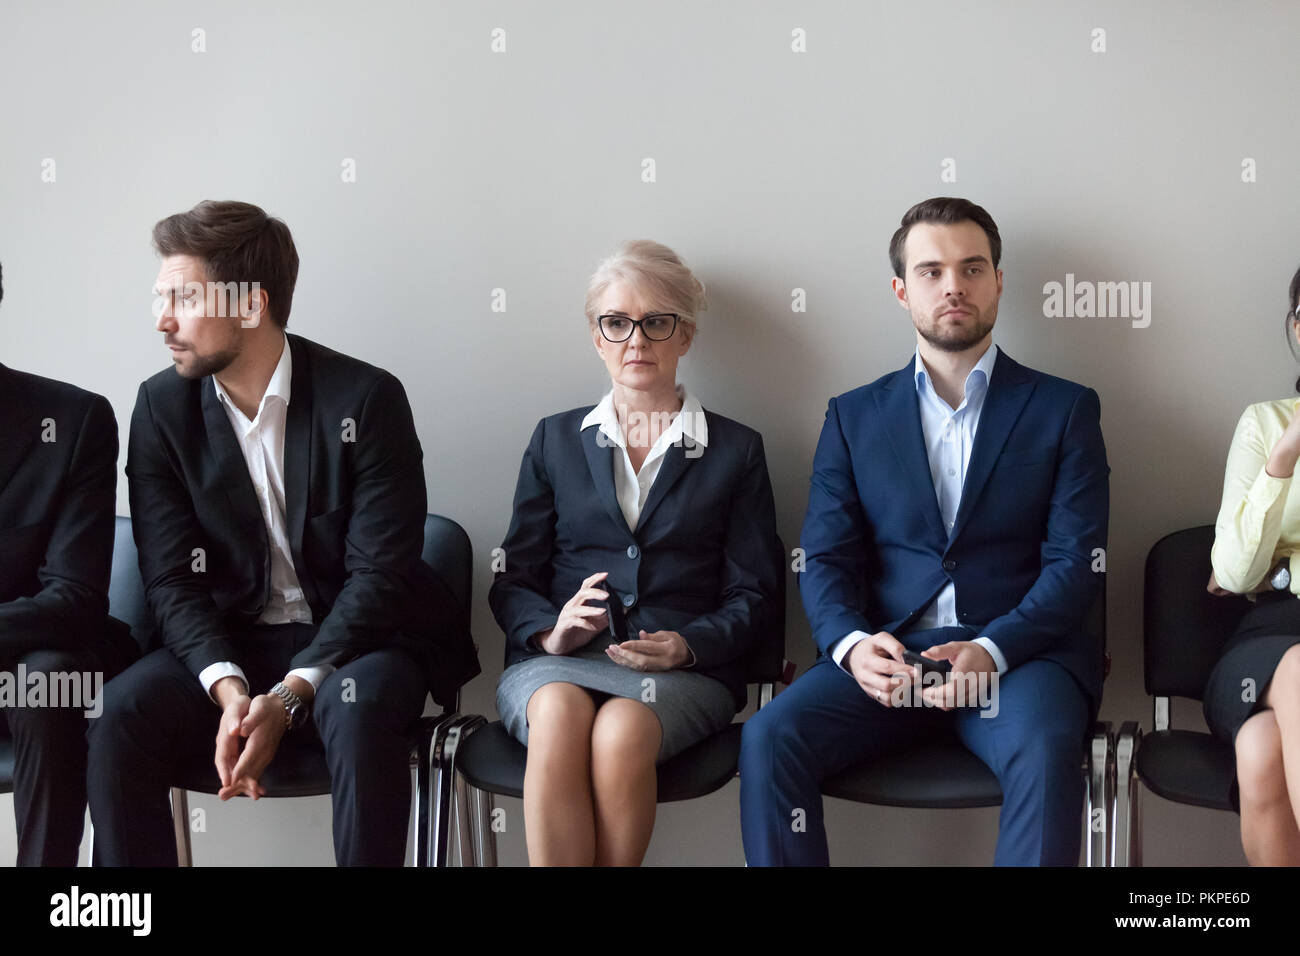 Young and mature candidates waiting for job interview in office - Stock Image